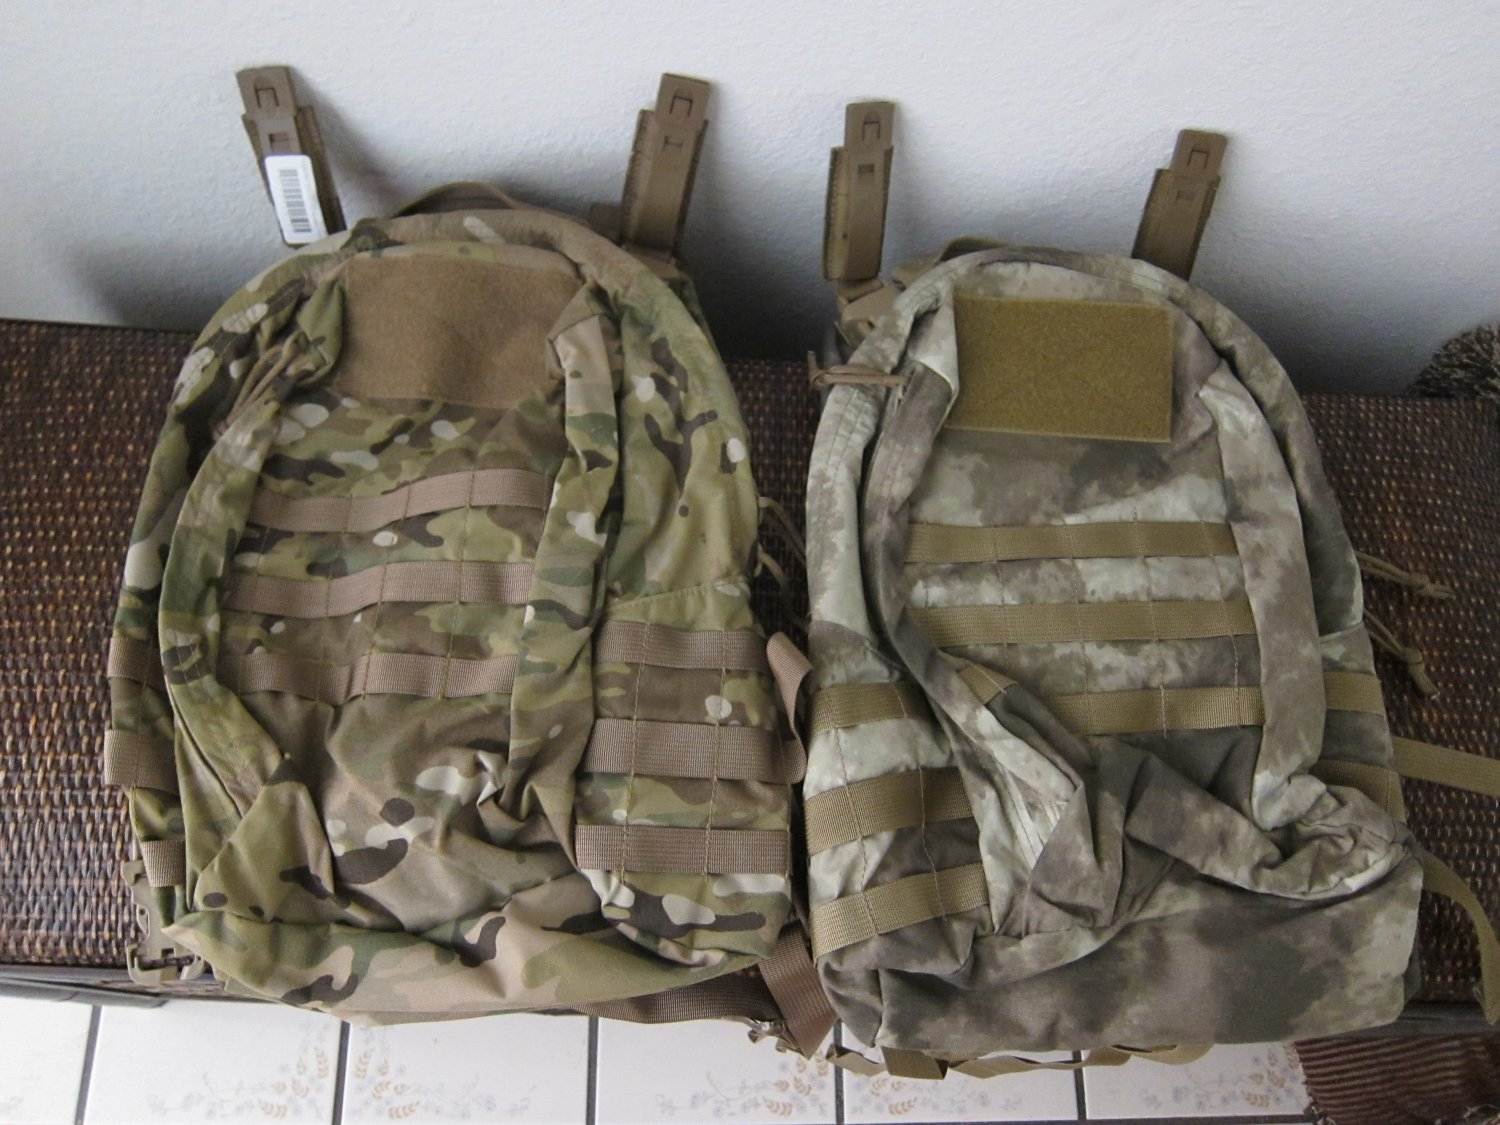 Grey Ghost Outlet Lightweight Assault Pack Fight Lite Operator Removable Pack LAP FLOR Crye MultiCam A TACS Camouflage 3 <!  :en  >Grey Ghost Lightweight Assault Pack/Fight Lite Operator Removable Pack (LAP/FLORP): MOLLE Attachable Lightweight Tactical Pack (Backpack) for Special Operations Forces (SOF) <!  :  >